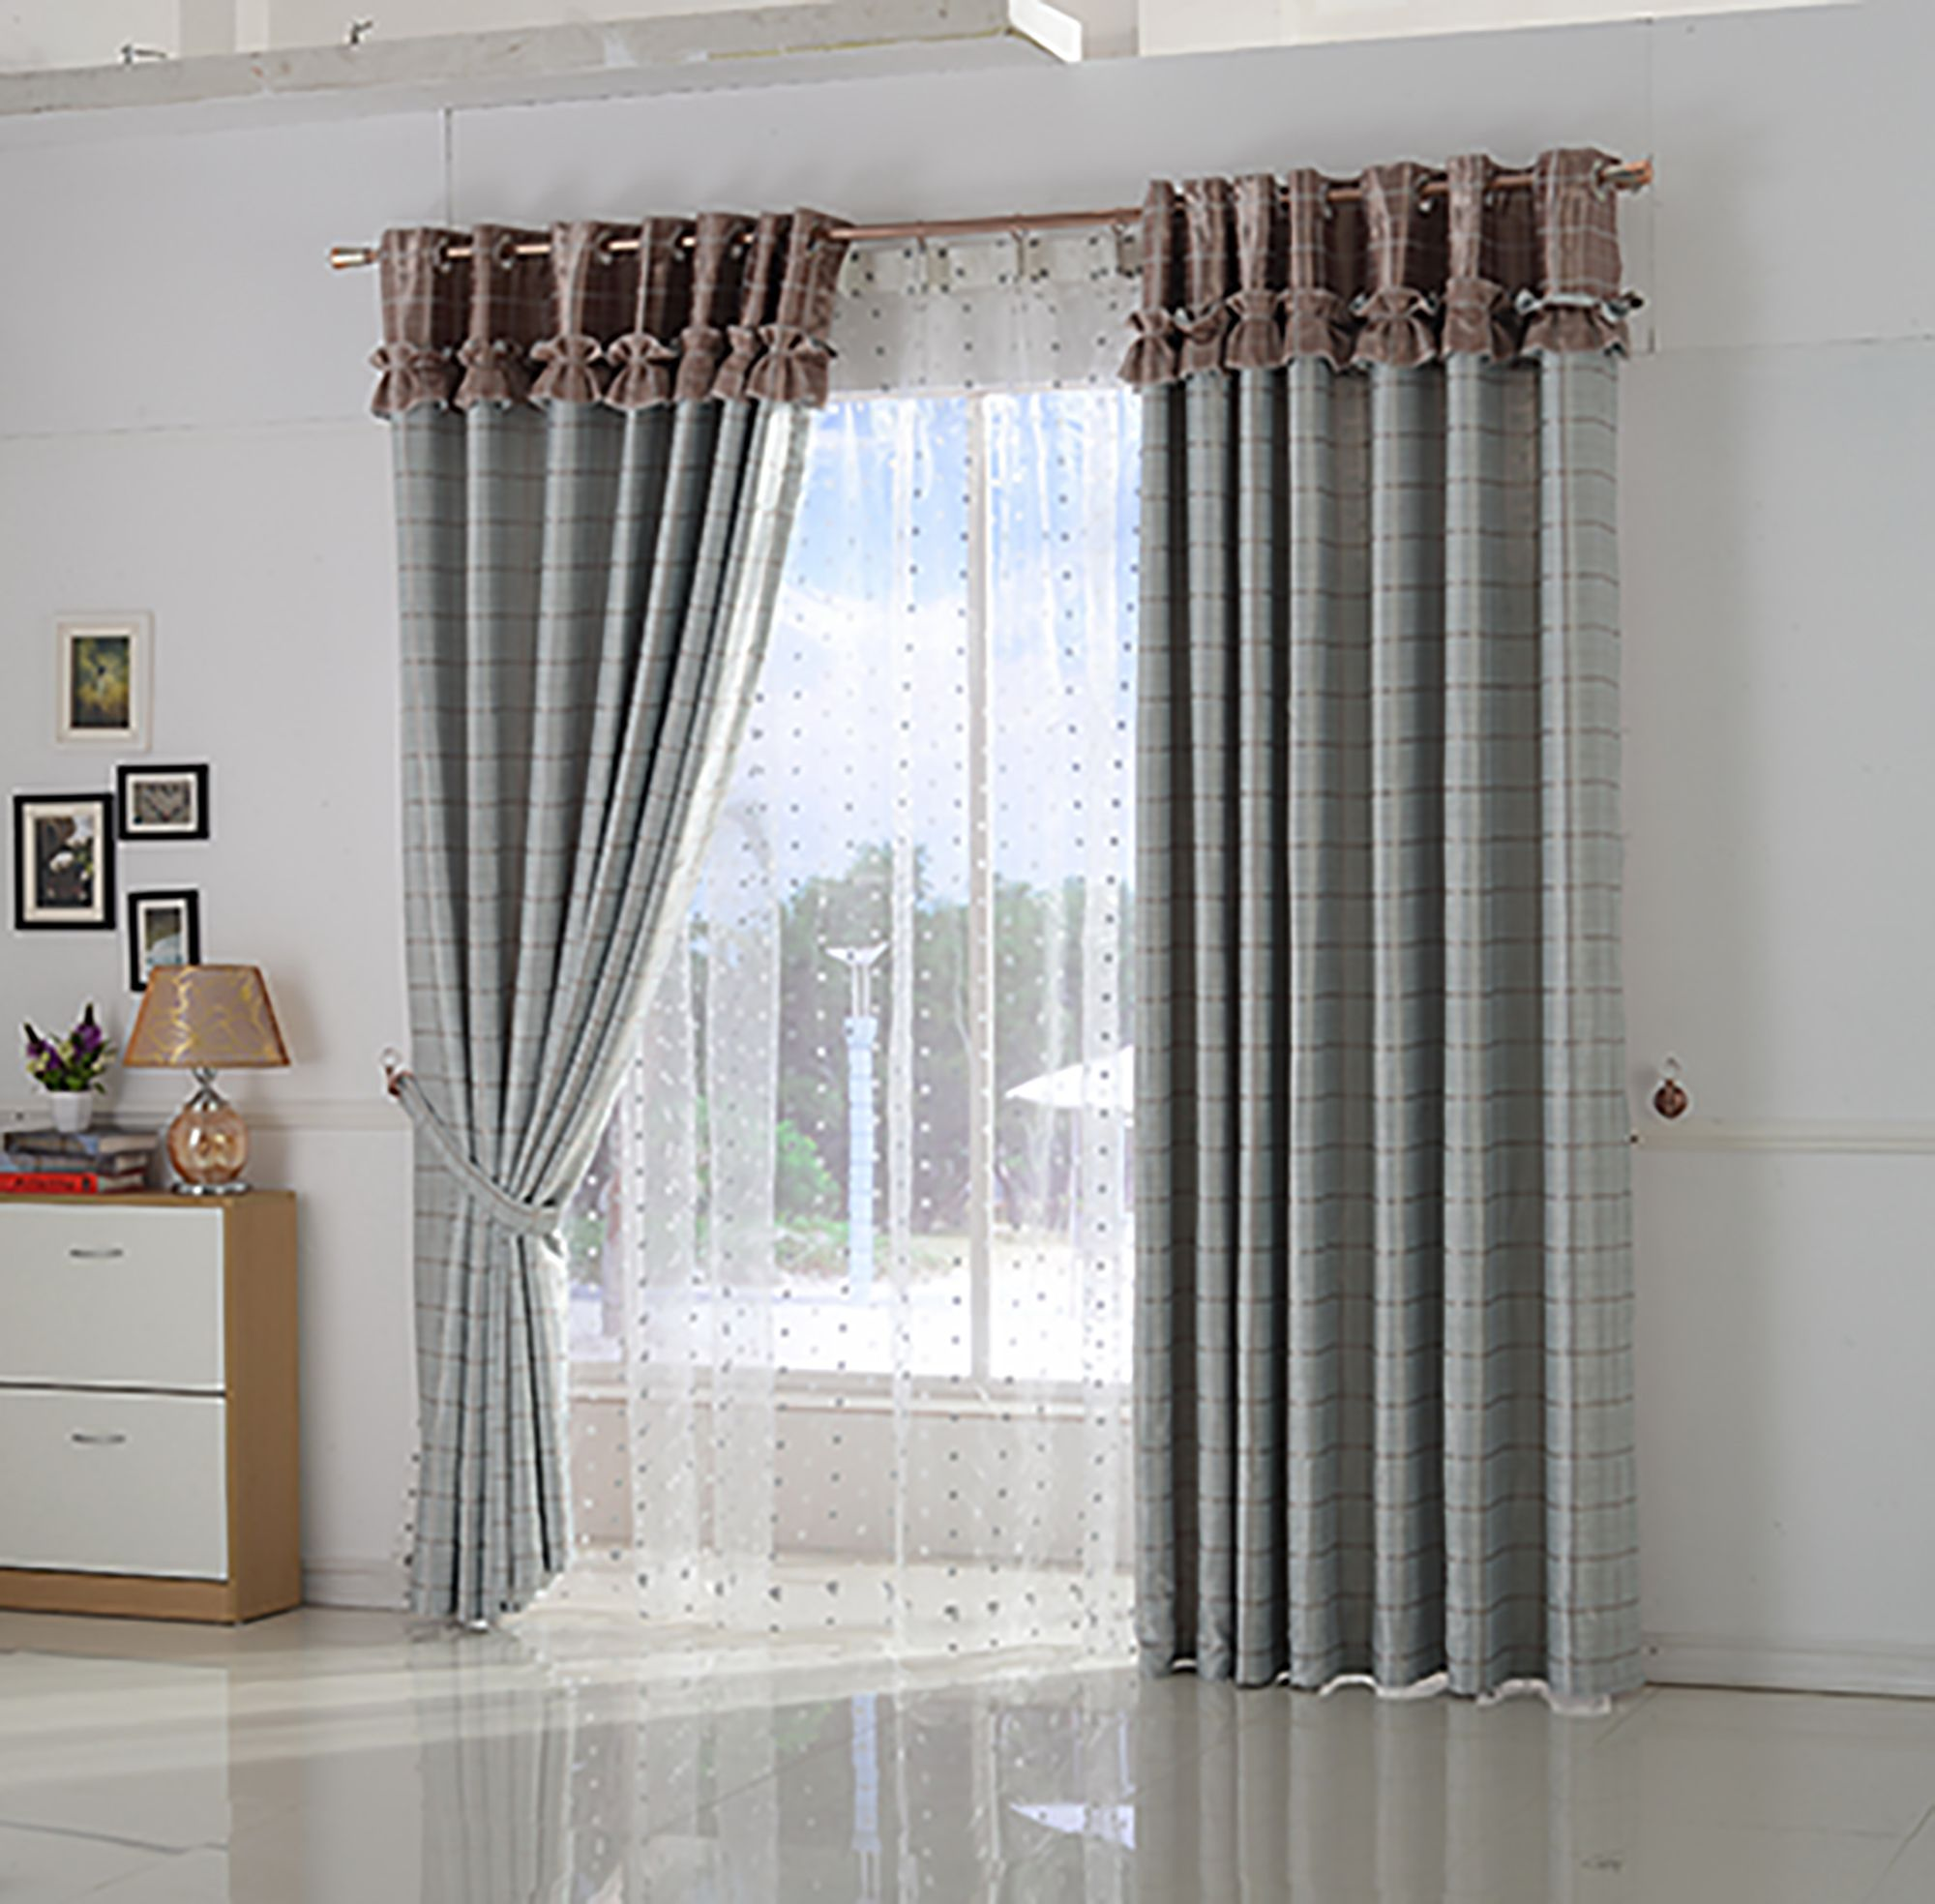 Design Curtain Pole Matching Drapery Style For Your House Decorative Drapery Styles Yellow Living Room Curtains